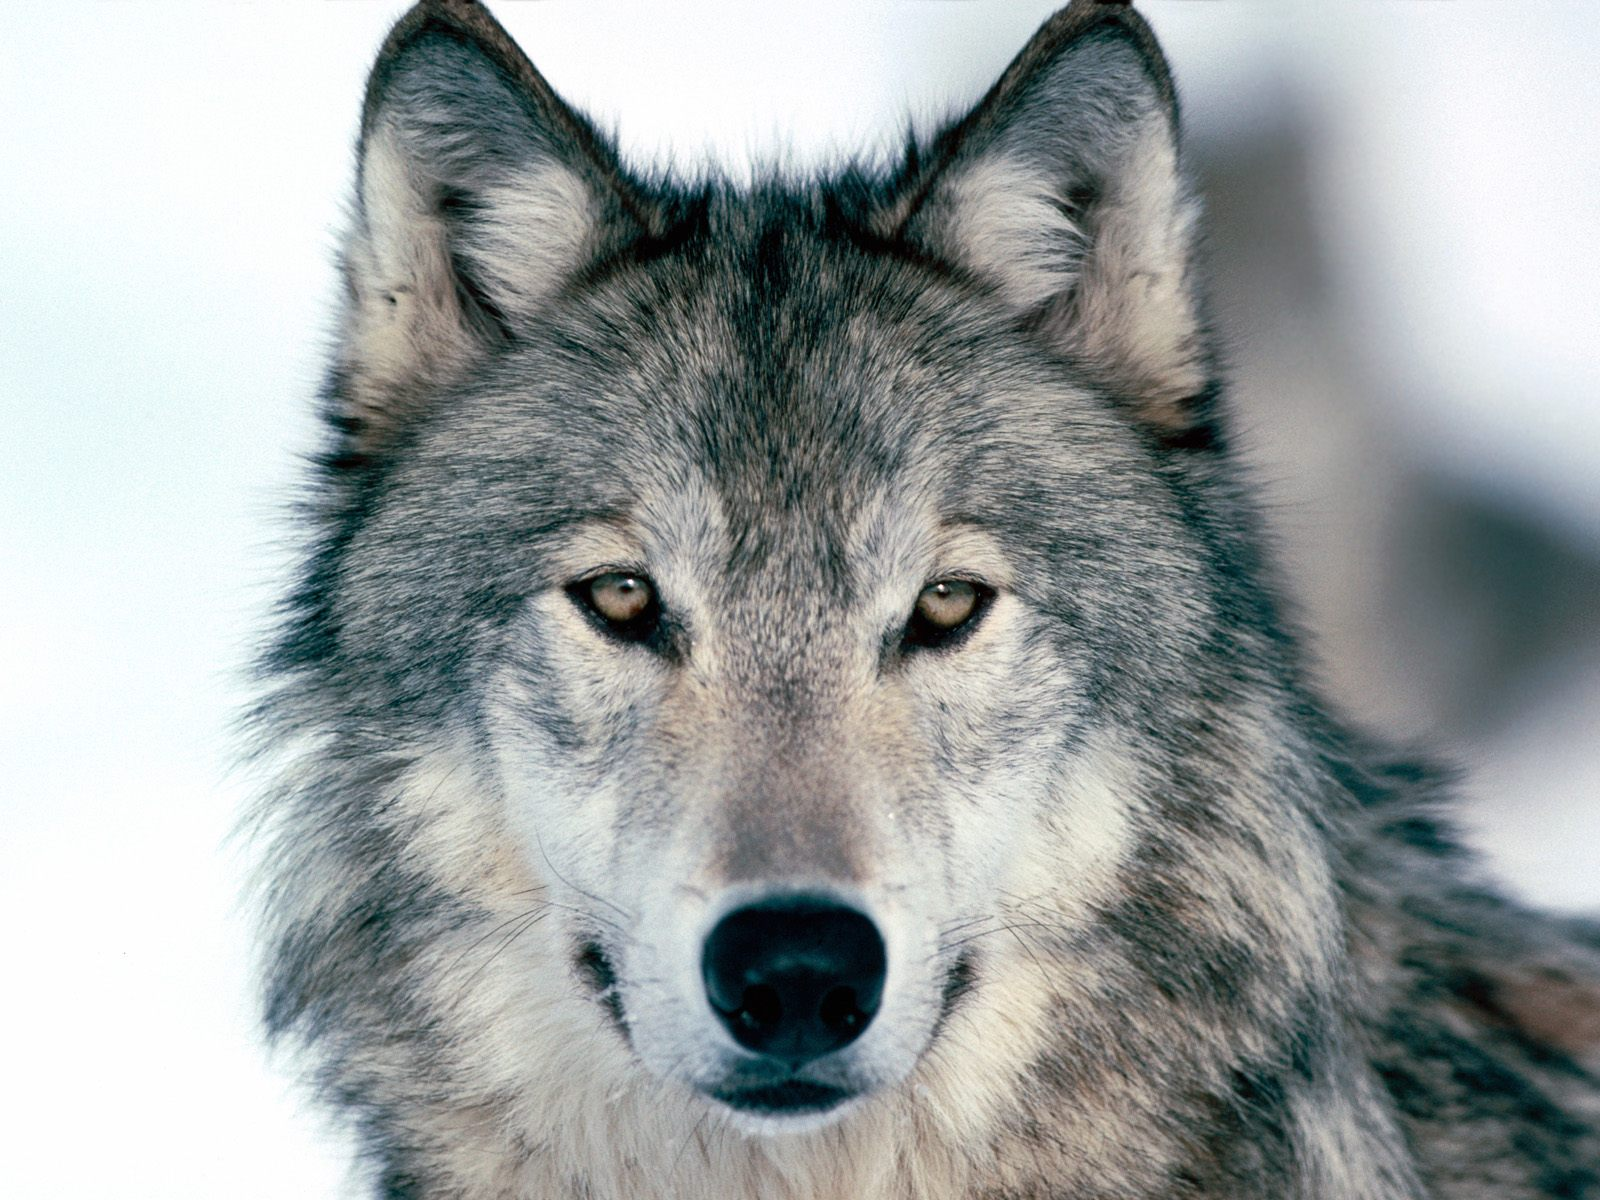 Will Hear Oral Arguments, Tuesday June 15, on Wolf Delisting Lawsuit